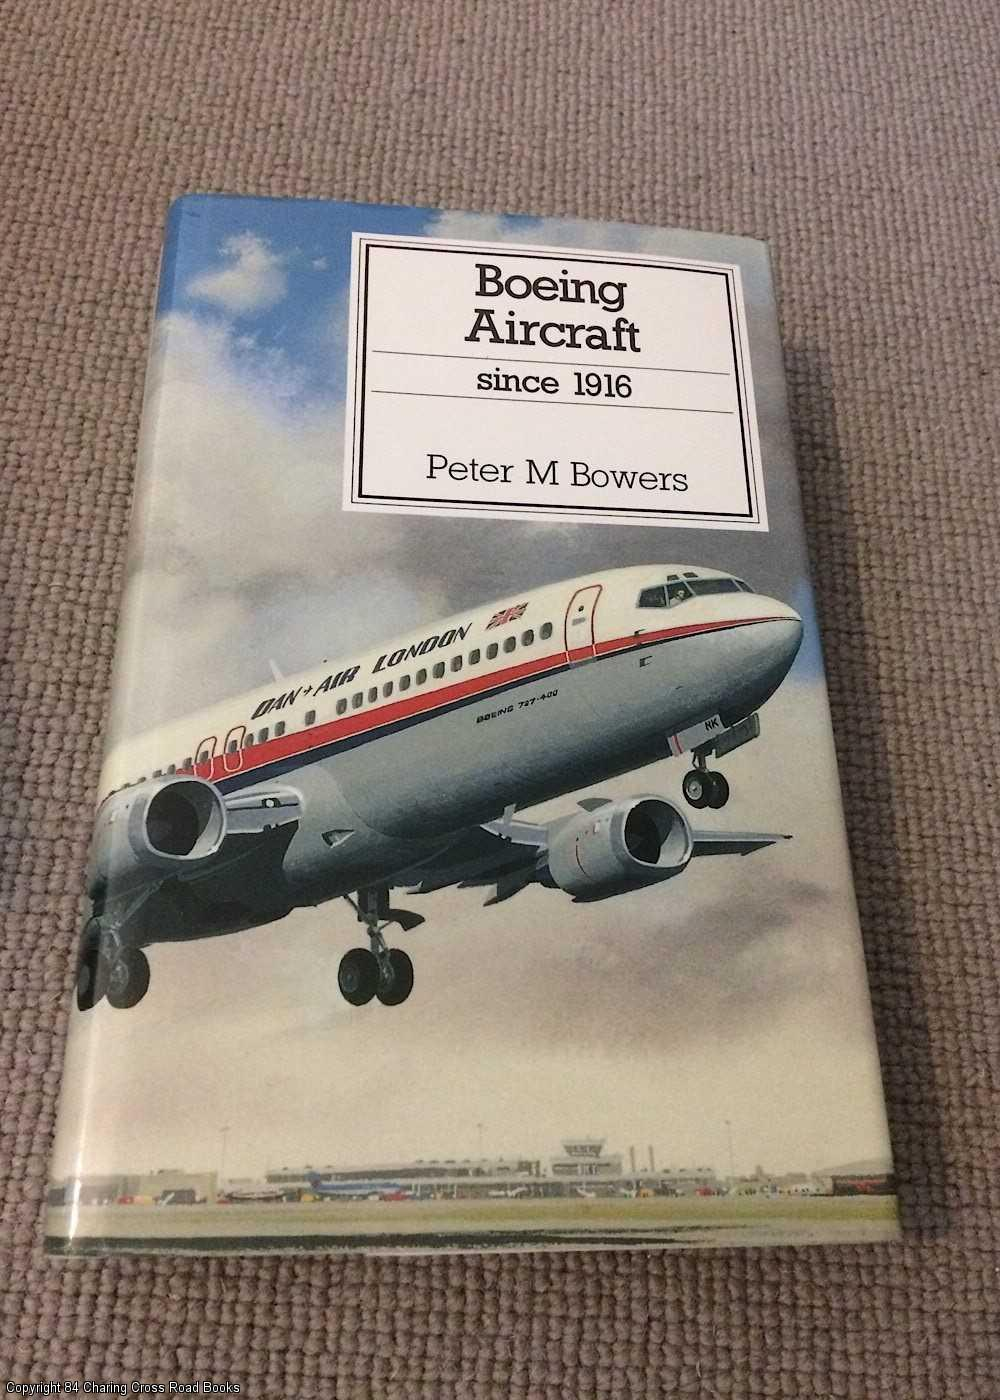 BOWERS, PETER M. - Boeing Aircraft Since 1916